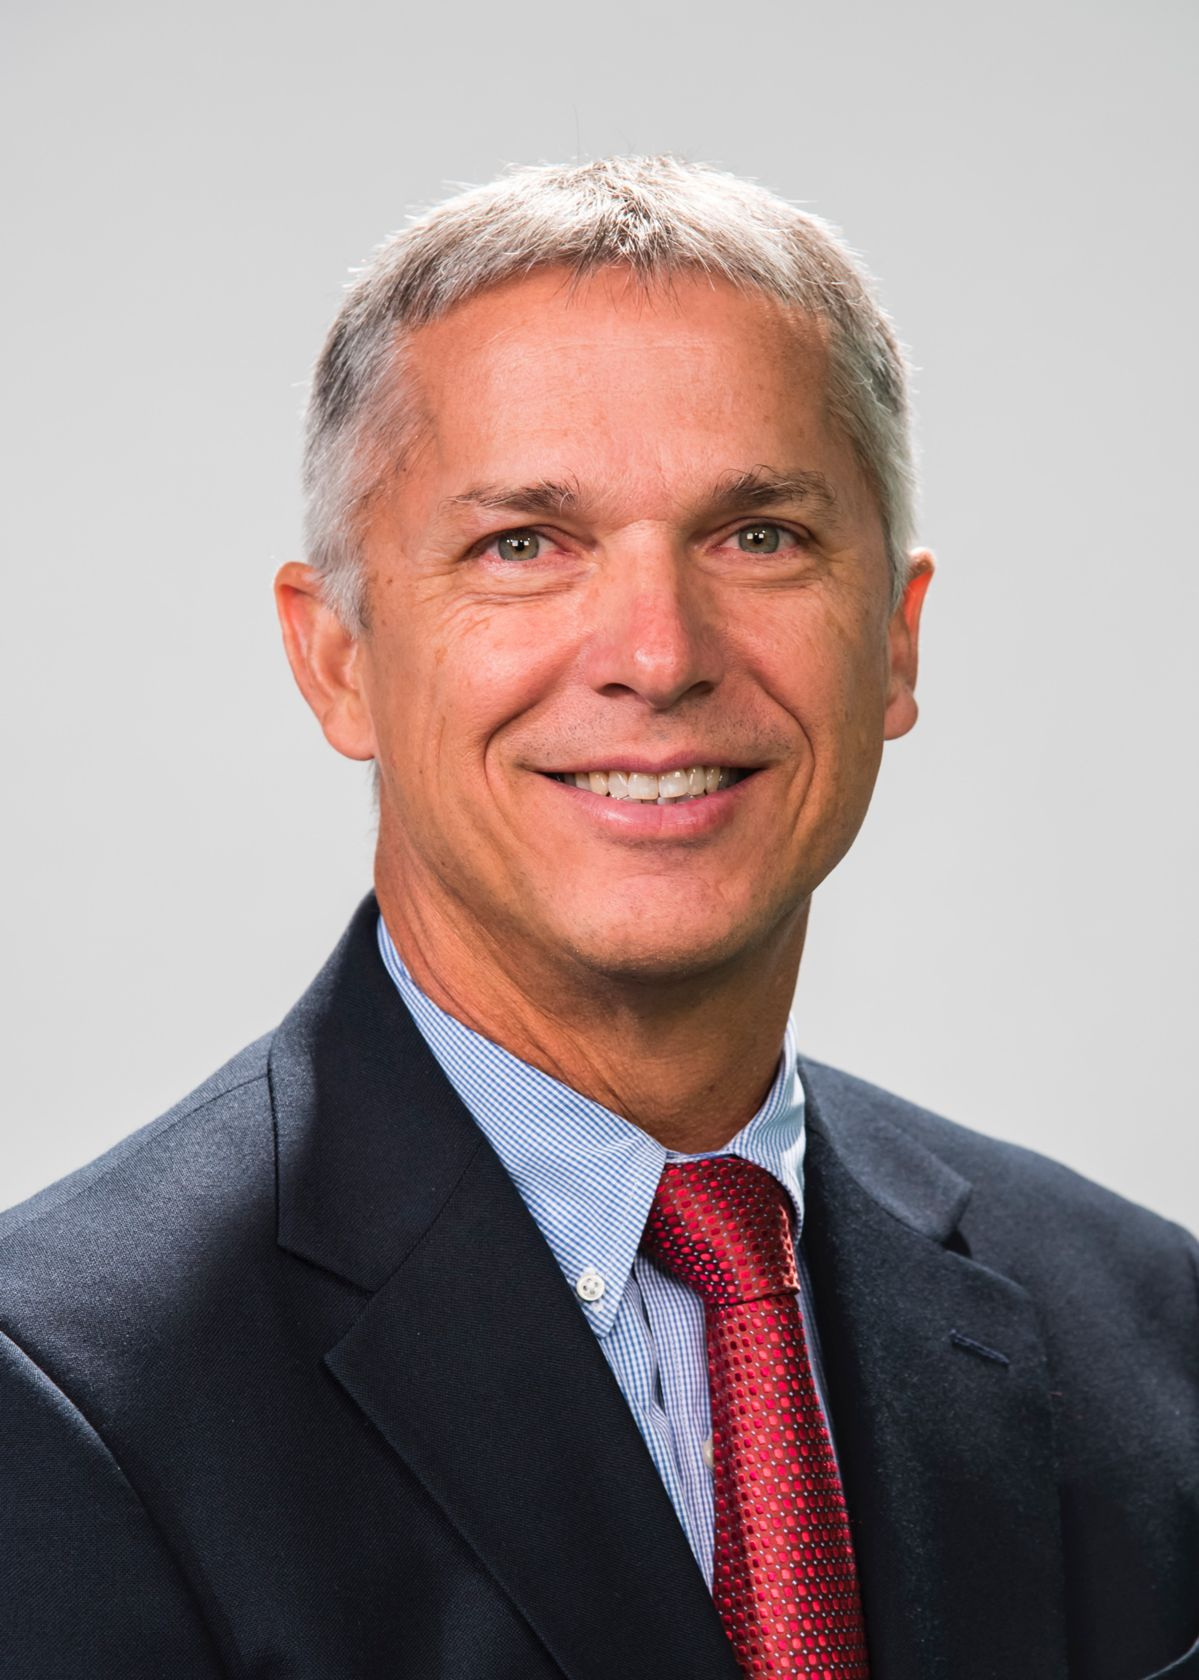 Leading Edge Equipment Technologies Appoints Solar Industry Veteran Dr. Rick Schwerdtfeger as New Chief Executive Officer, Leading Edge